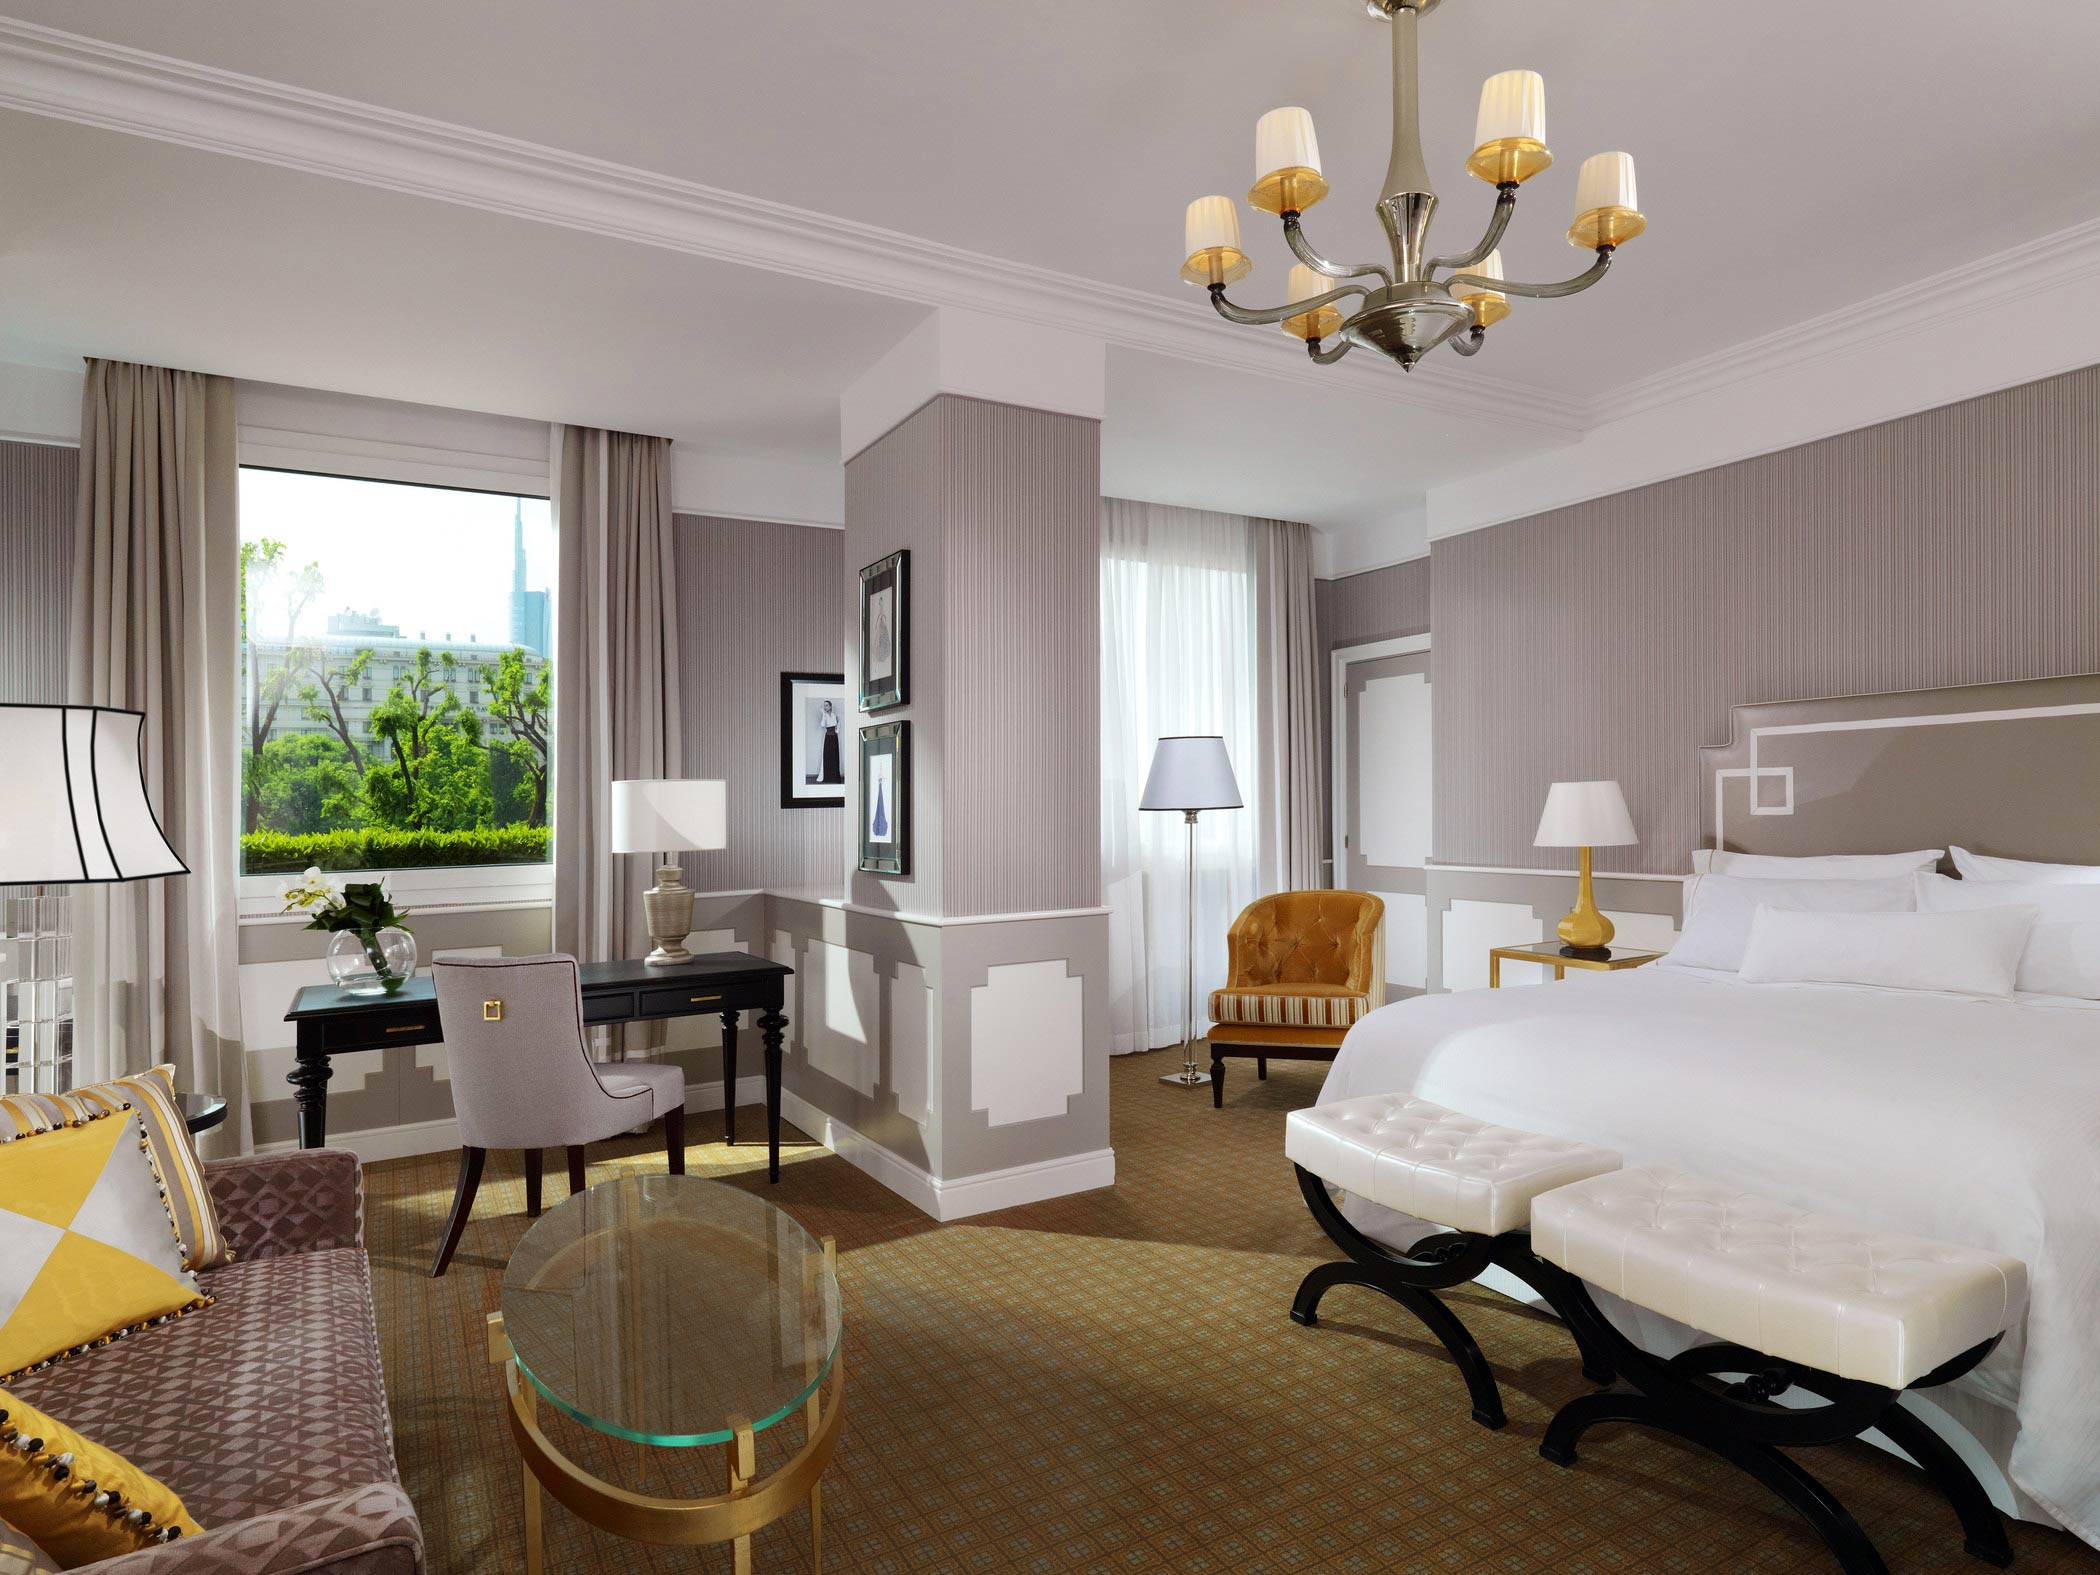 Explore-Italy-Hotel-The-Westin-Palace-Milan-Grand-Deluxe-Contemporary-Room